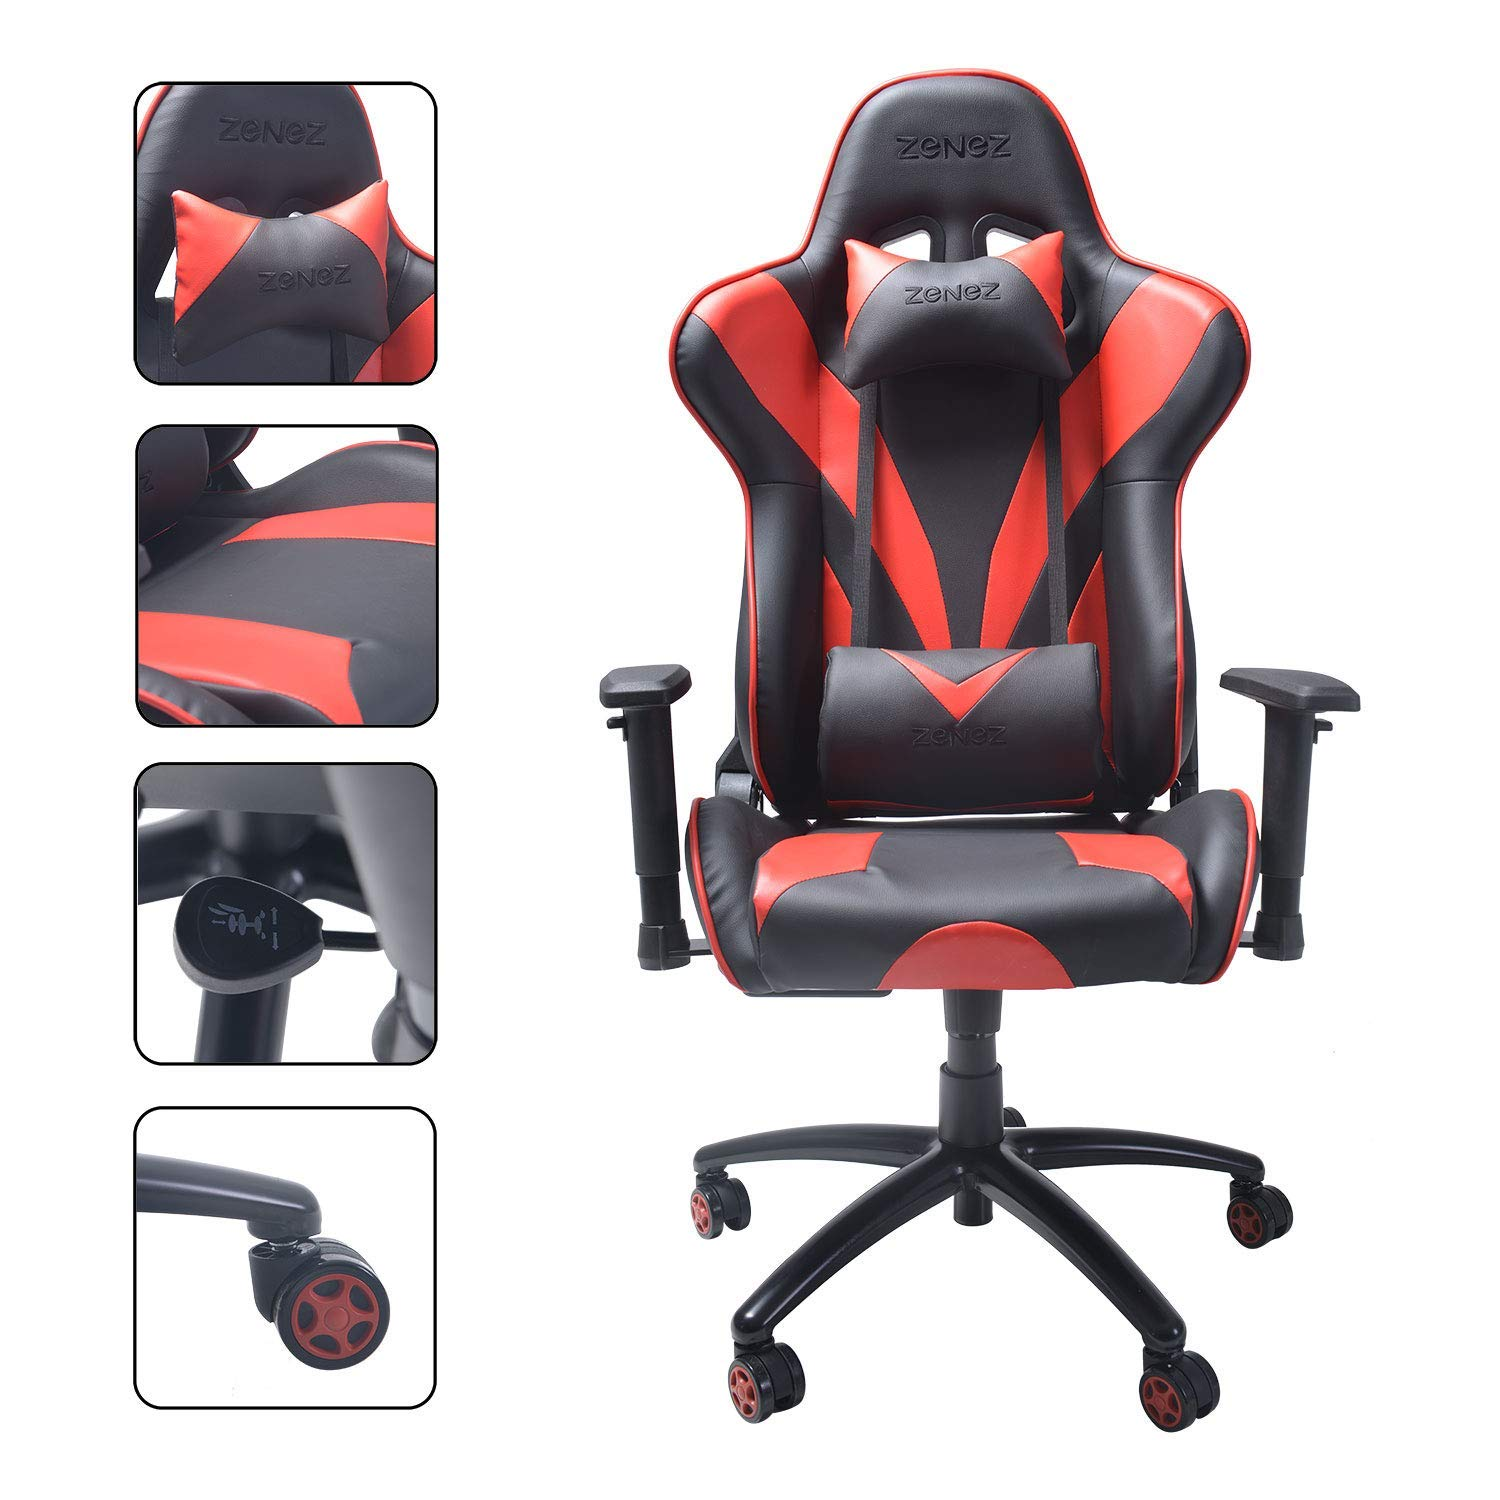 ZENEZ Gaming Chair Office Chair Aluminum Alloy Five-Star Base Racing Style Ergonomic Computer Chair with Backrest and Seat Height Adjustable Swivel Rocker with Headrest and Lumbar Pillow XL (Red)